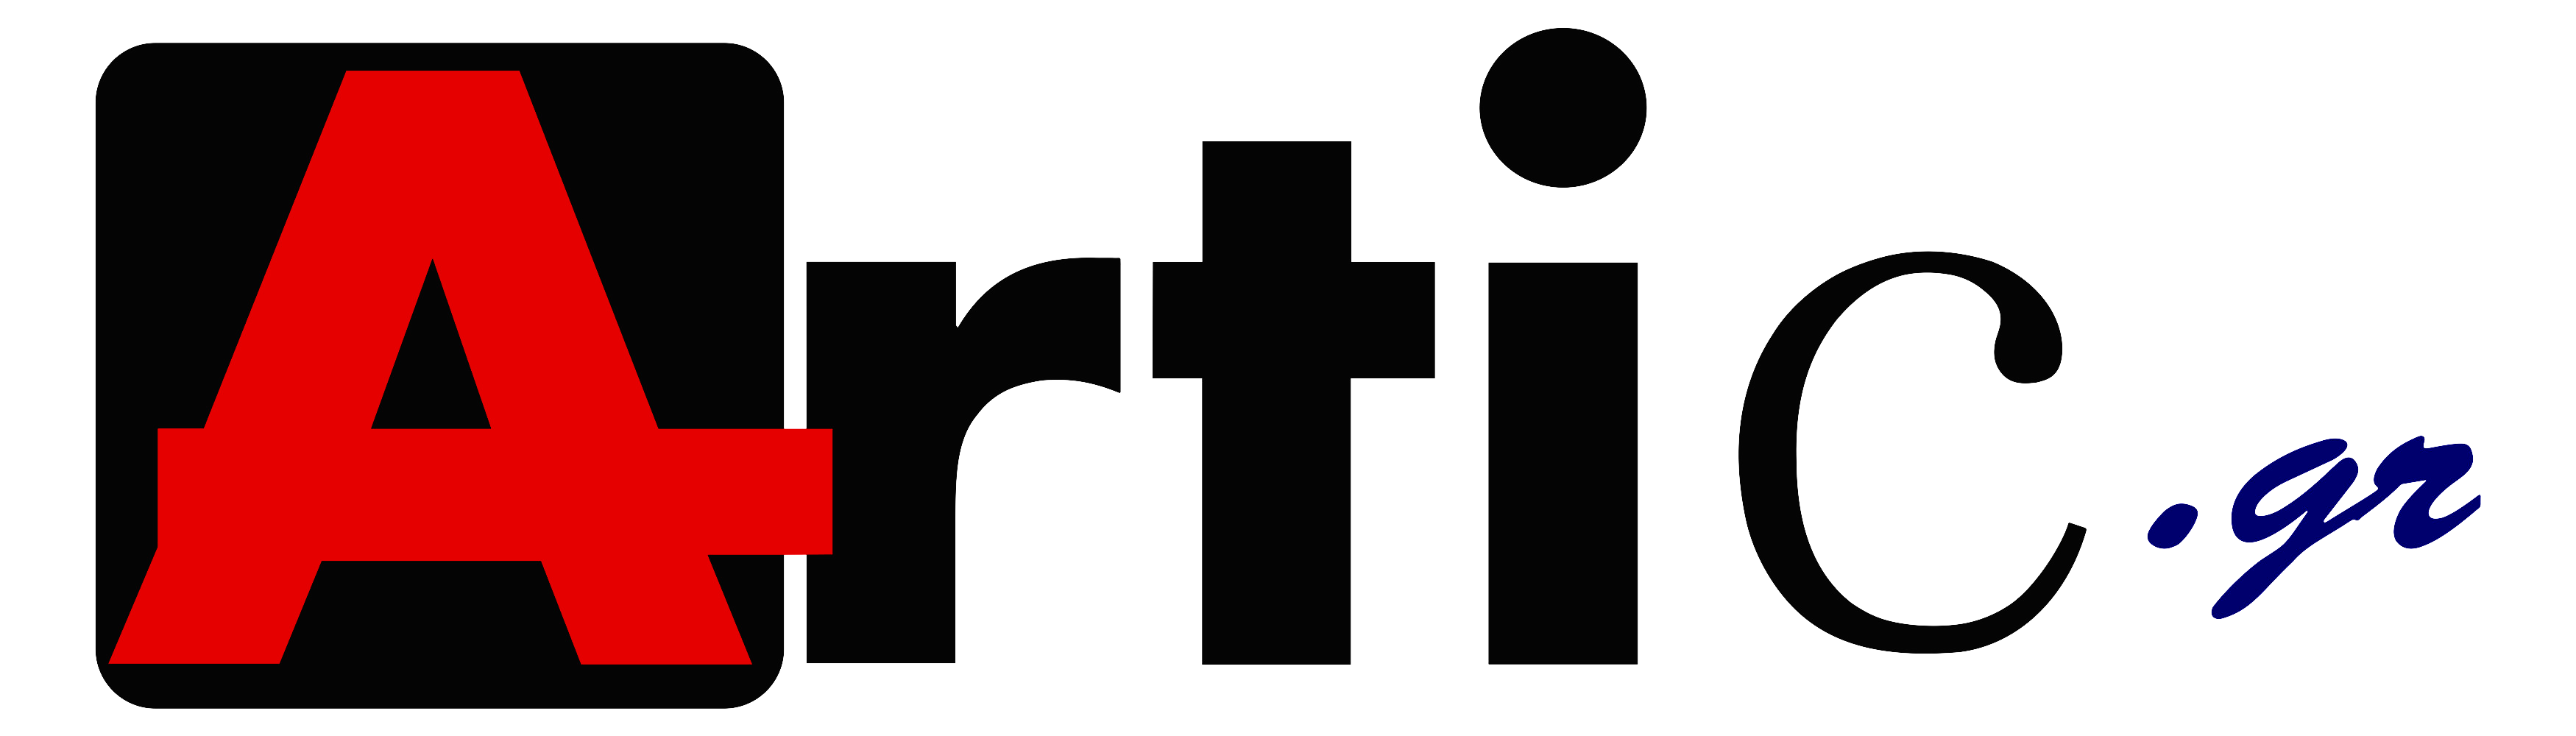 Artic-logo-whitefont-brght-hq